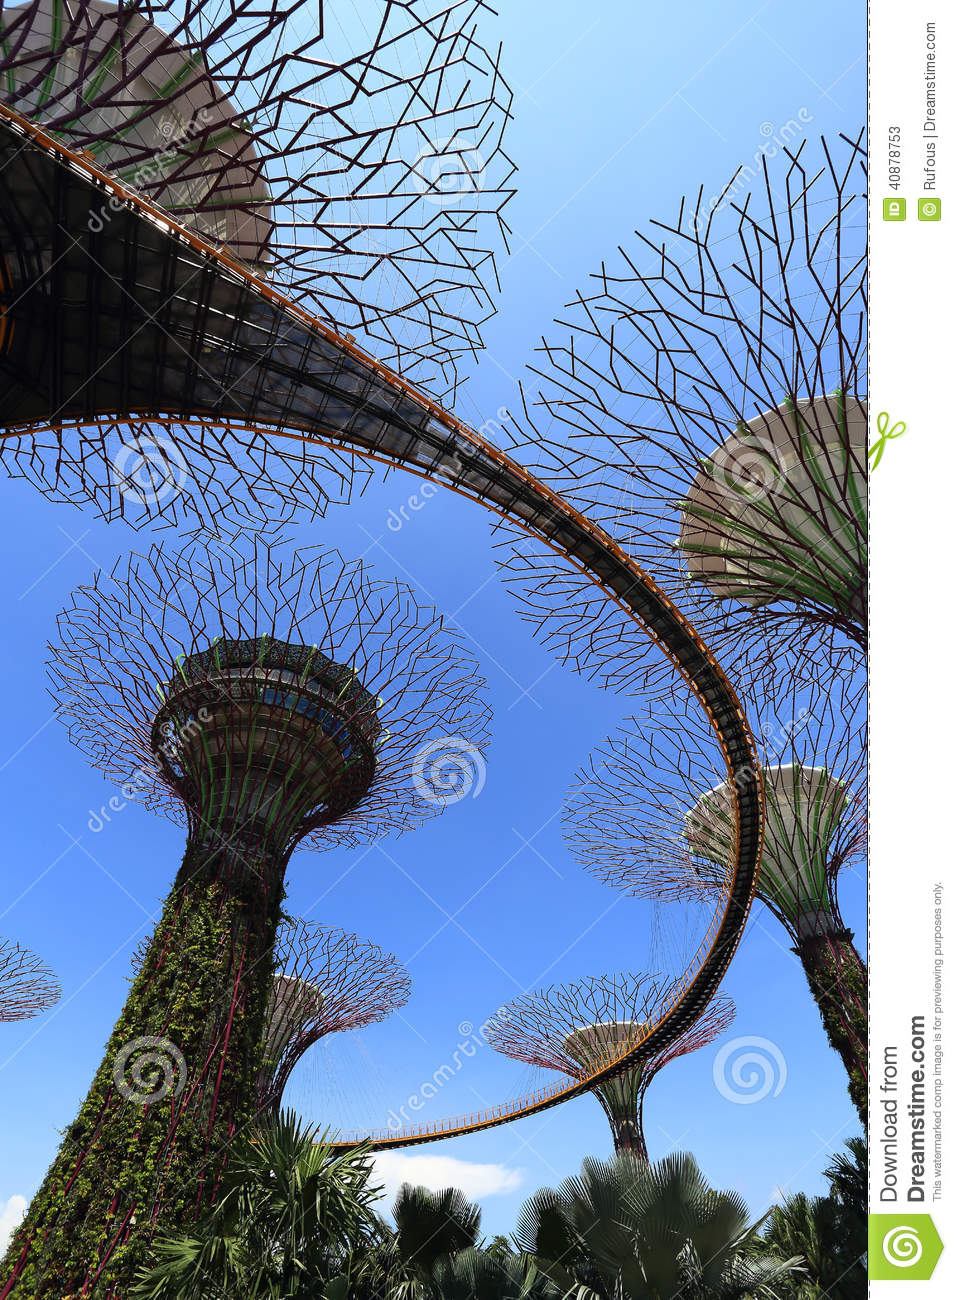 The Supertrees Grove at Gardens by the Bay